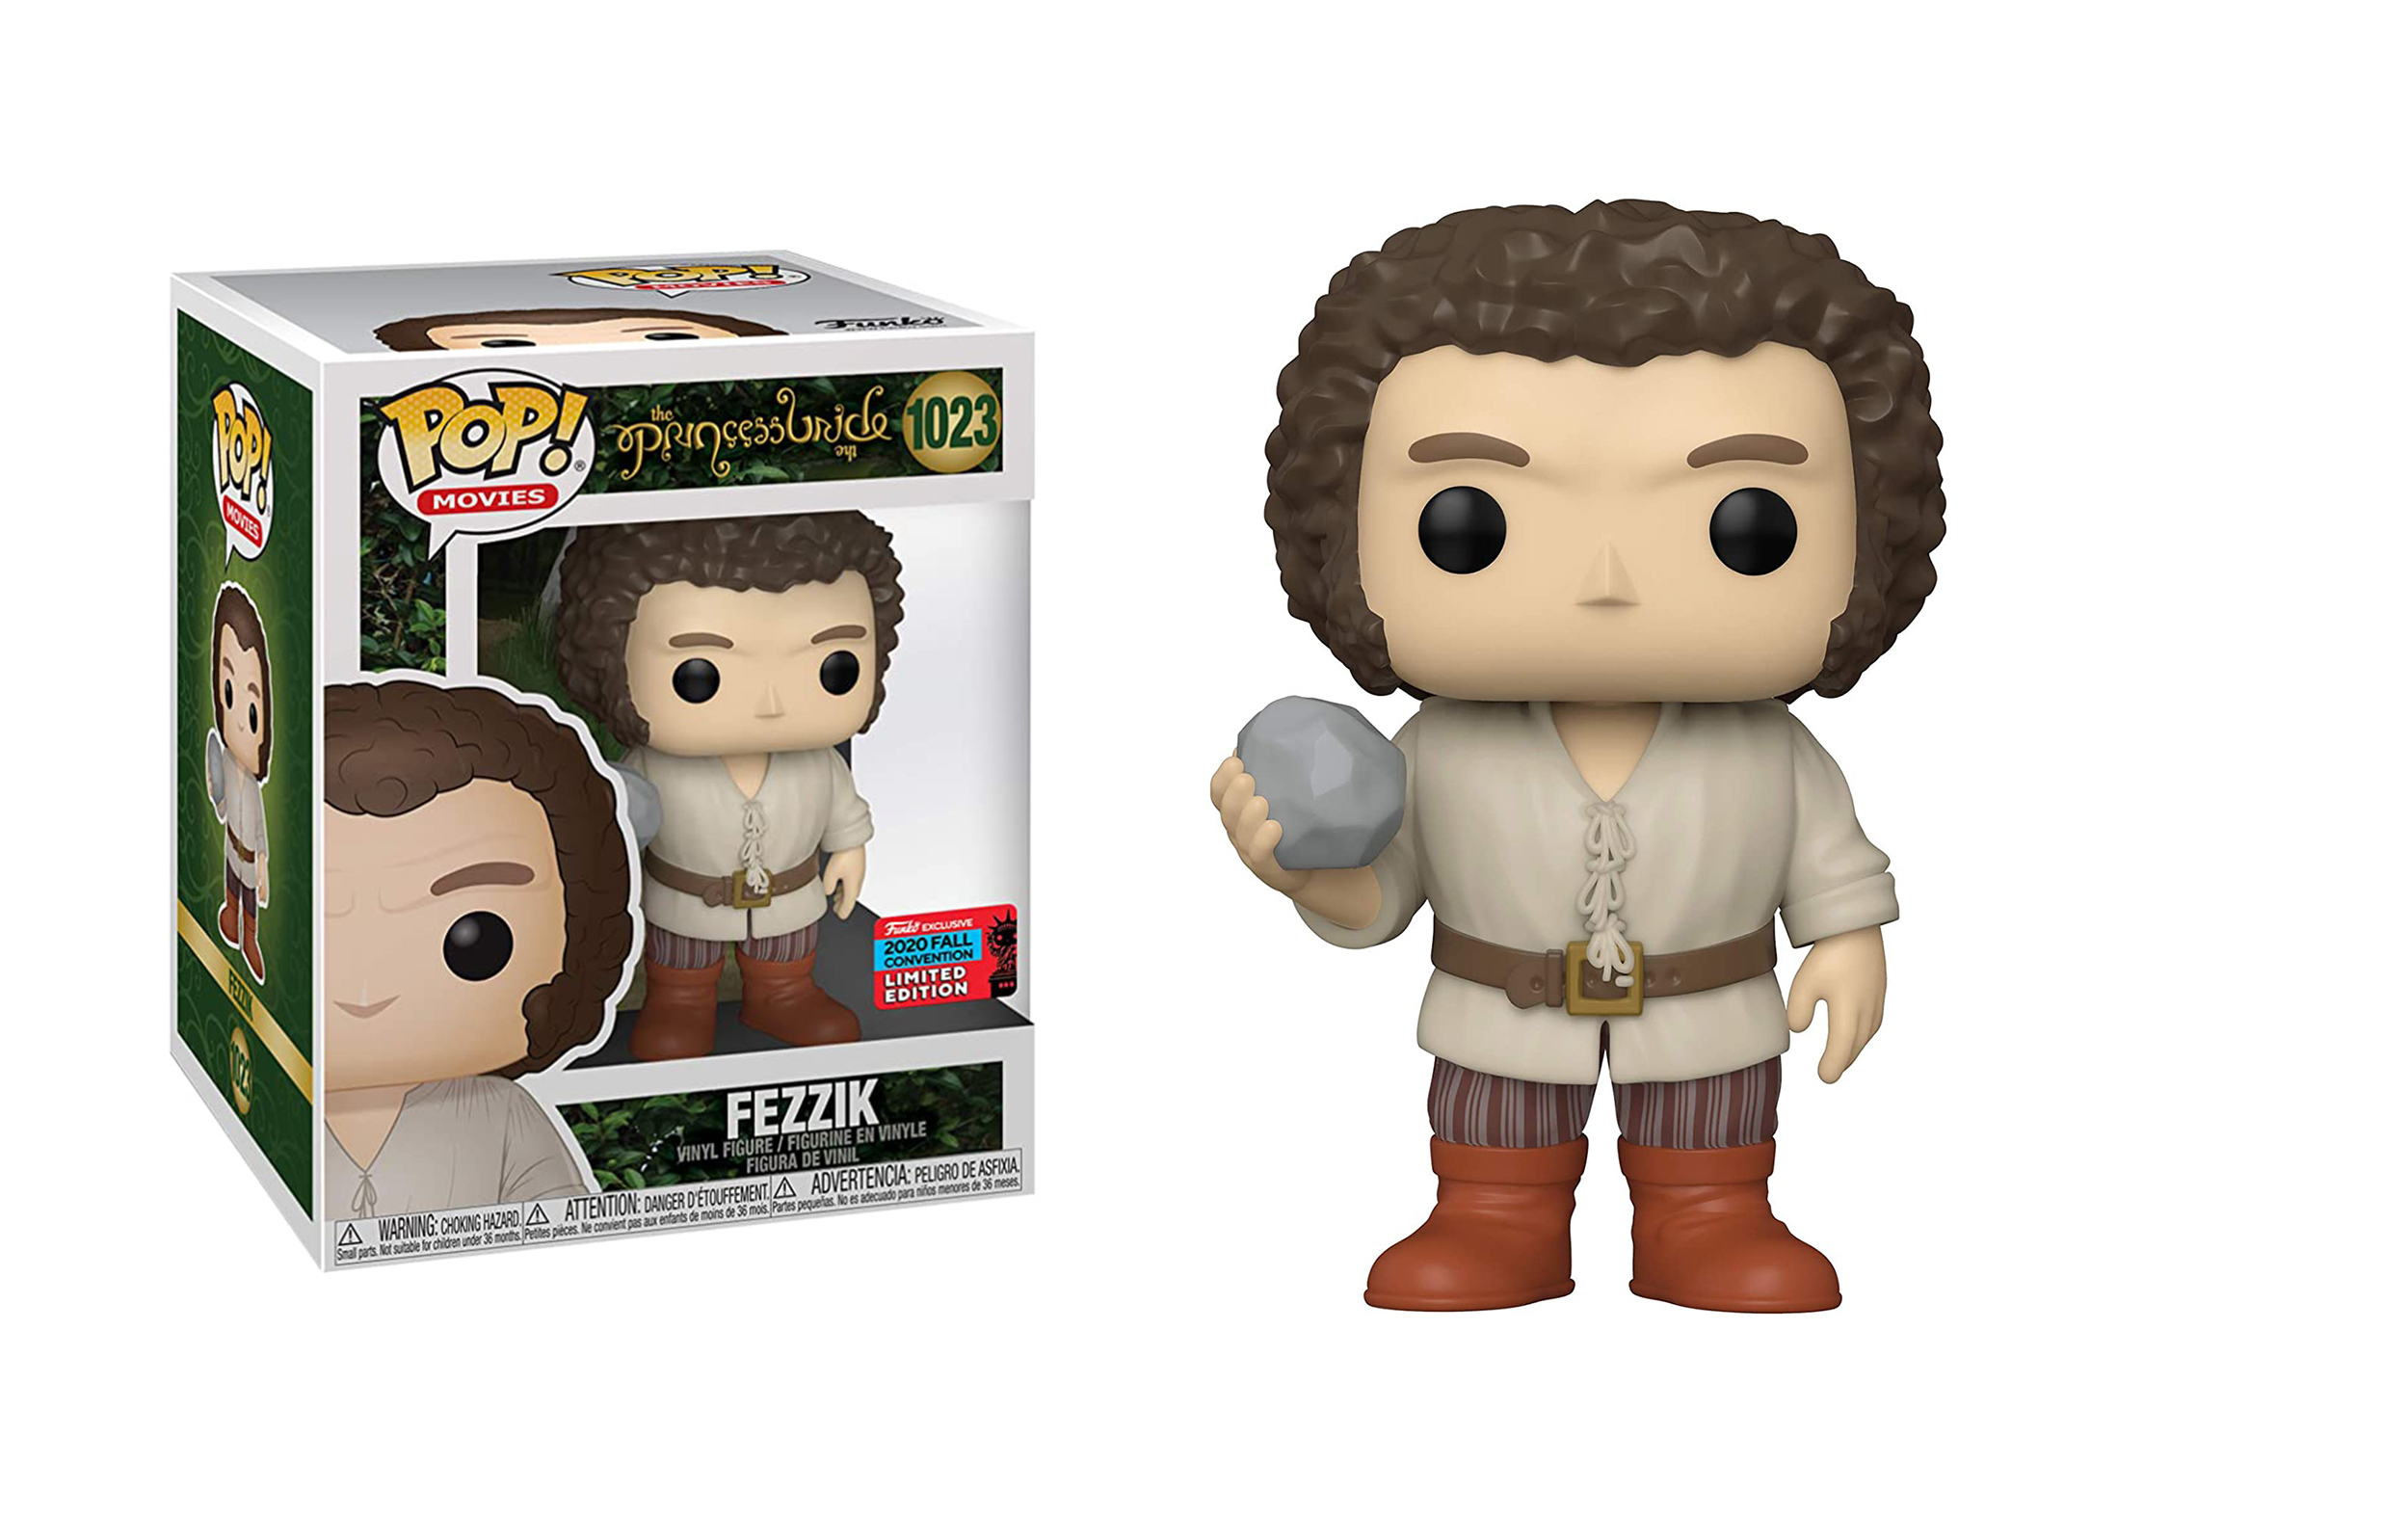 The Princess Bride Fezzik Fall Convention 2020 1023 Funko POP Vinyl Figure